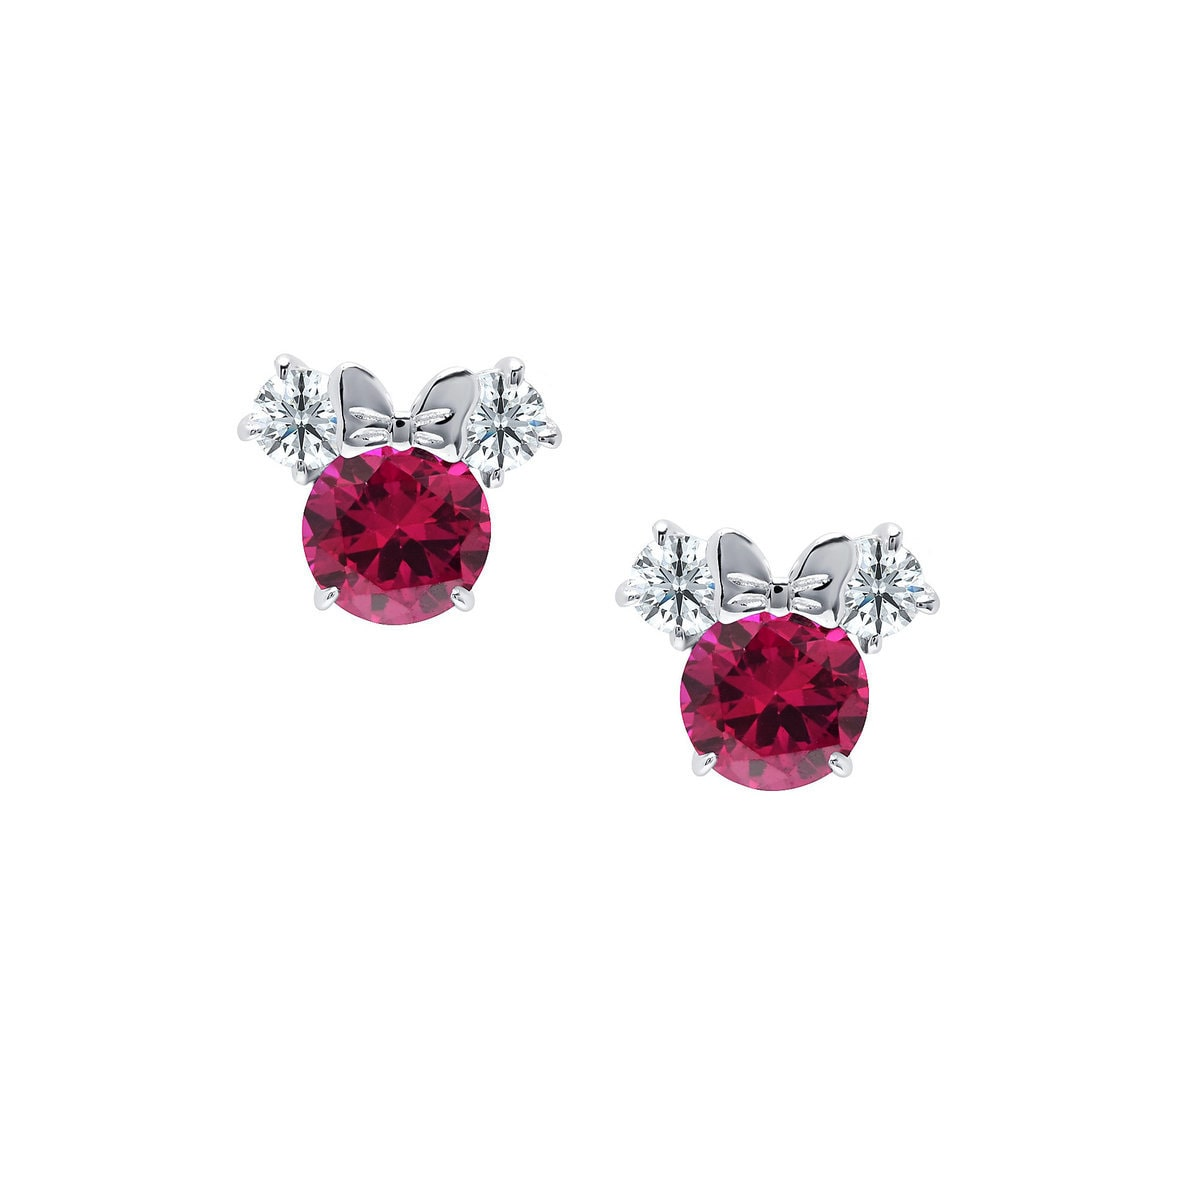 a46d4e26e Product Image of Minnie Mouse Birthstone Earrings by CRISLU # 1